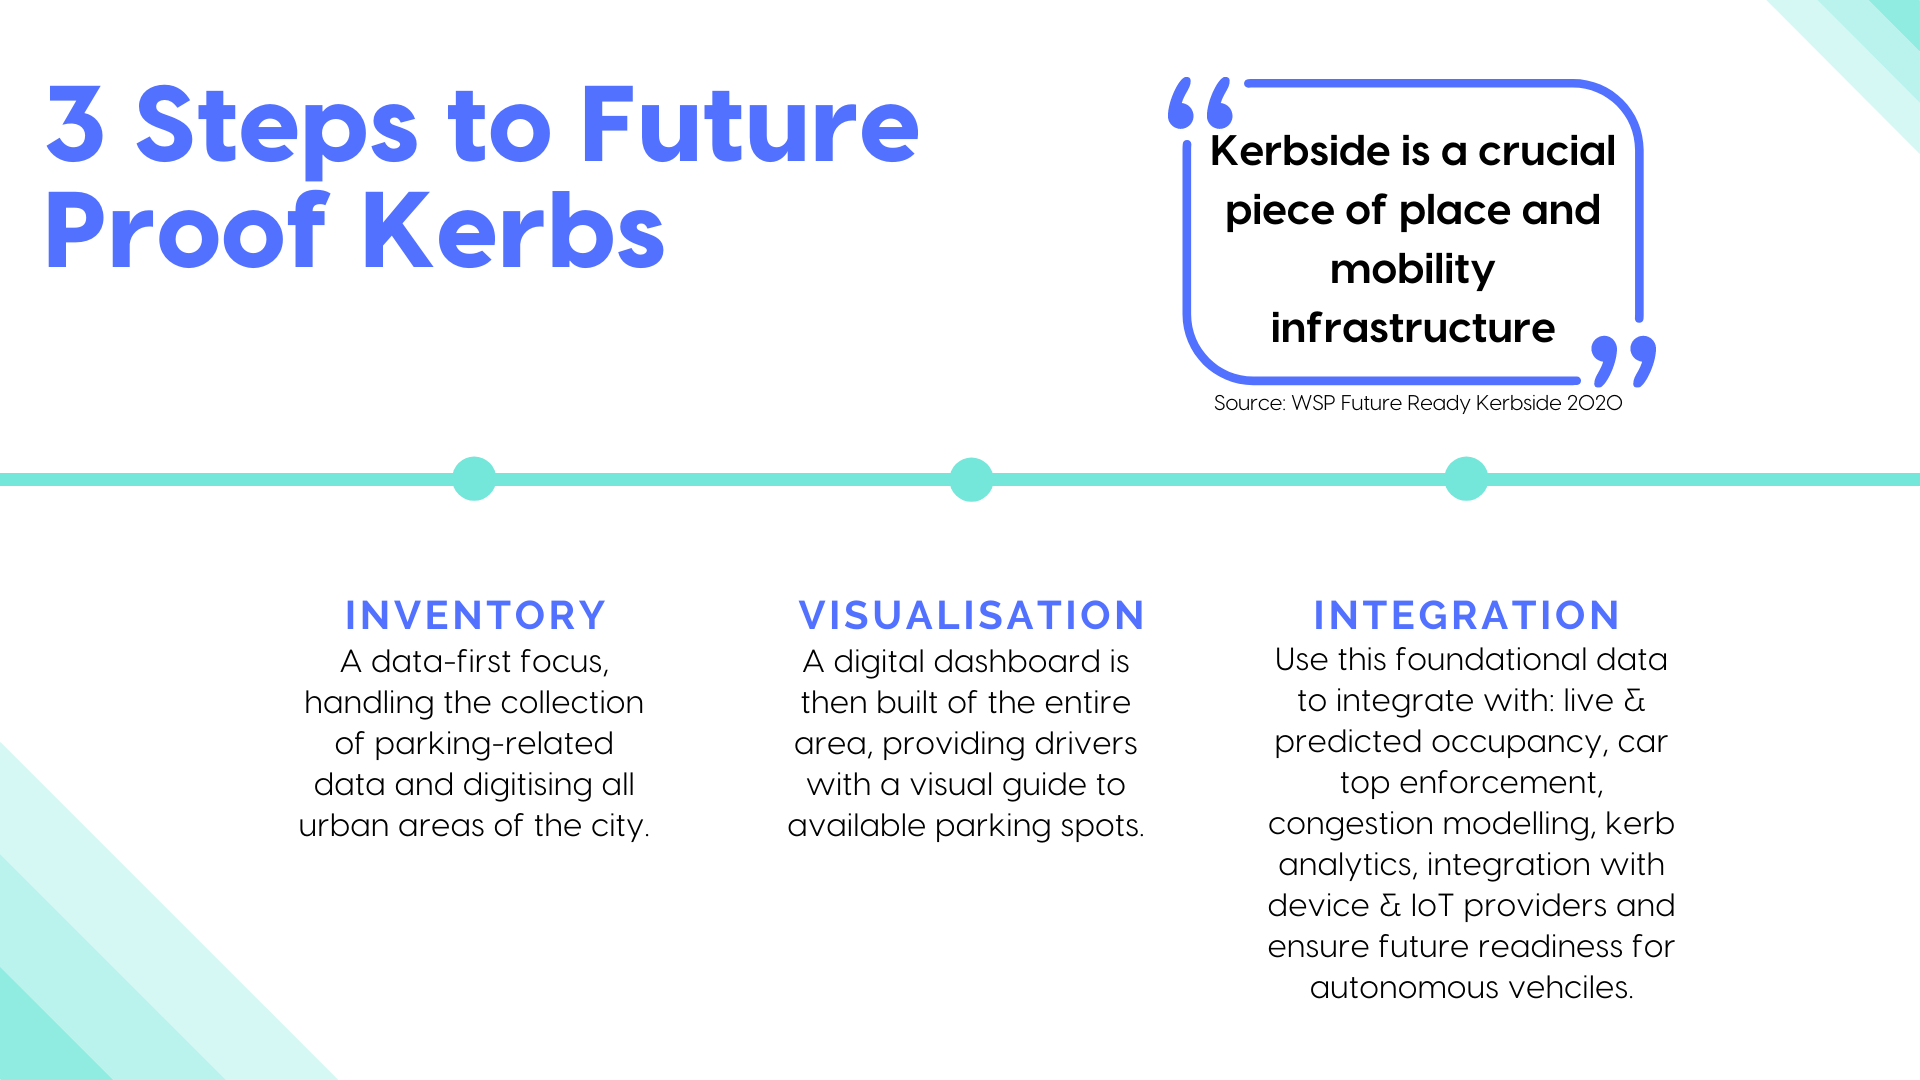 Spot Parking's 3 steps to future proof kerbs for better mobility and parking